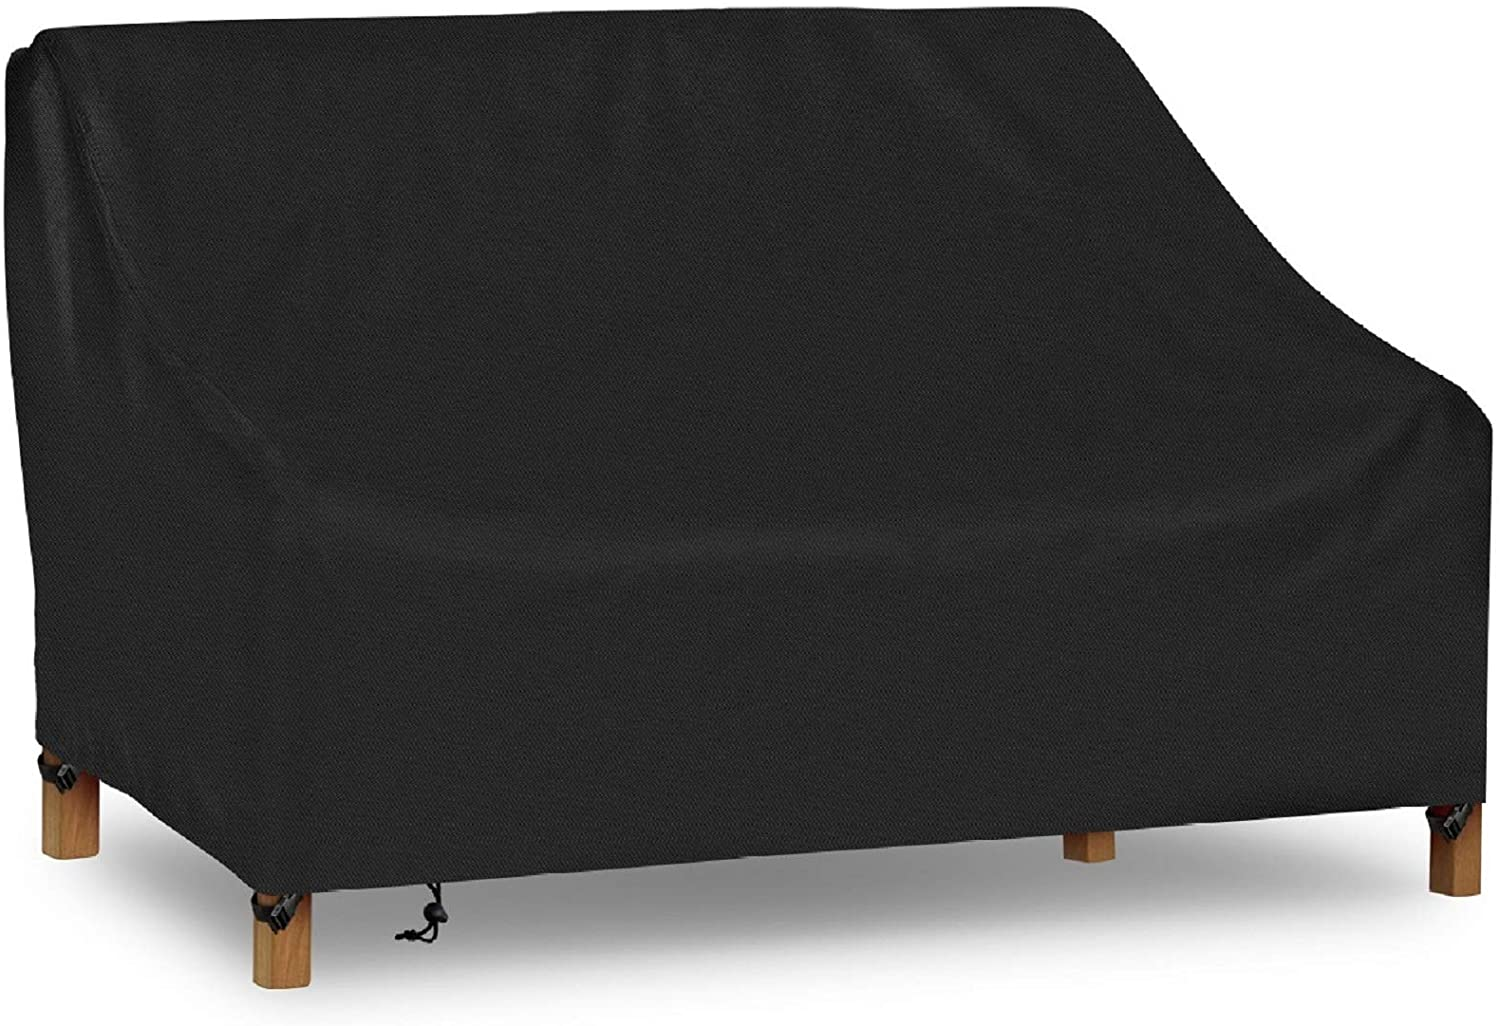 "iCOVER Patio Sofa Cover, Waterproof 2-Seater Deep Lounge Loveseat Cover, Lightweight Easy On/Off, Buckles Drawstring Design,90""x34""x32"" (LxDxH)"